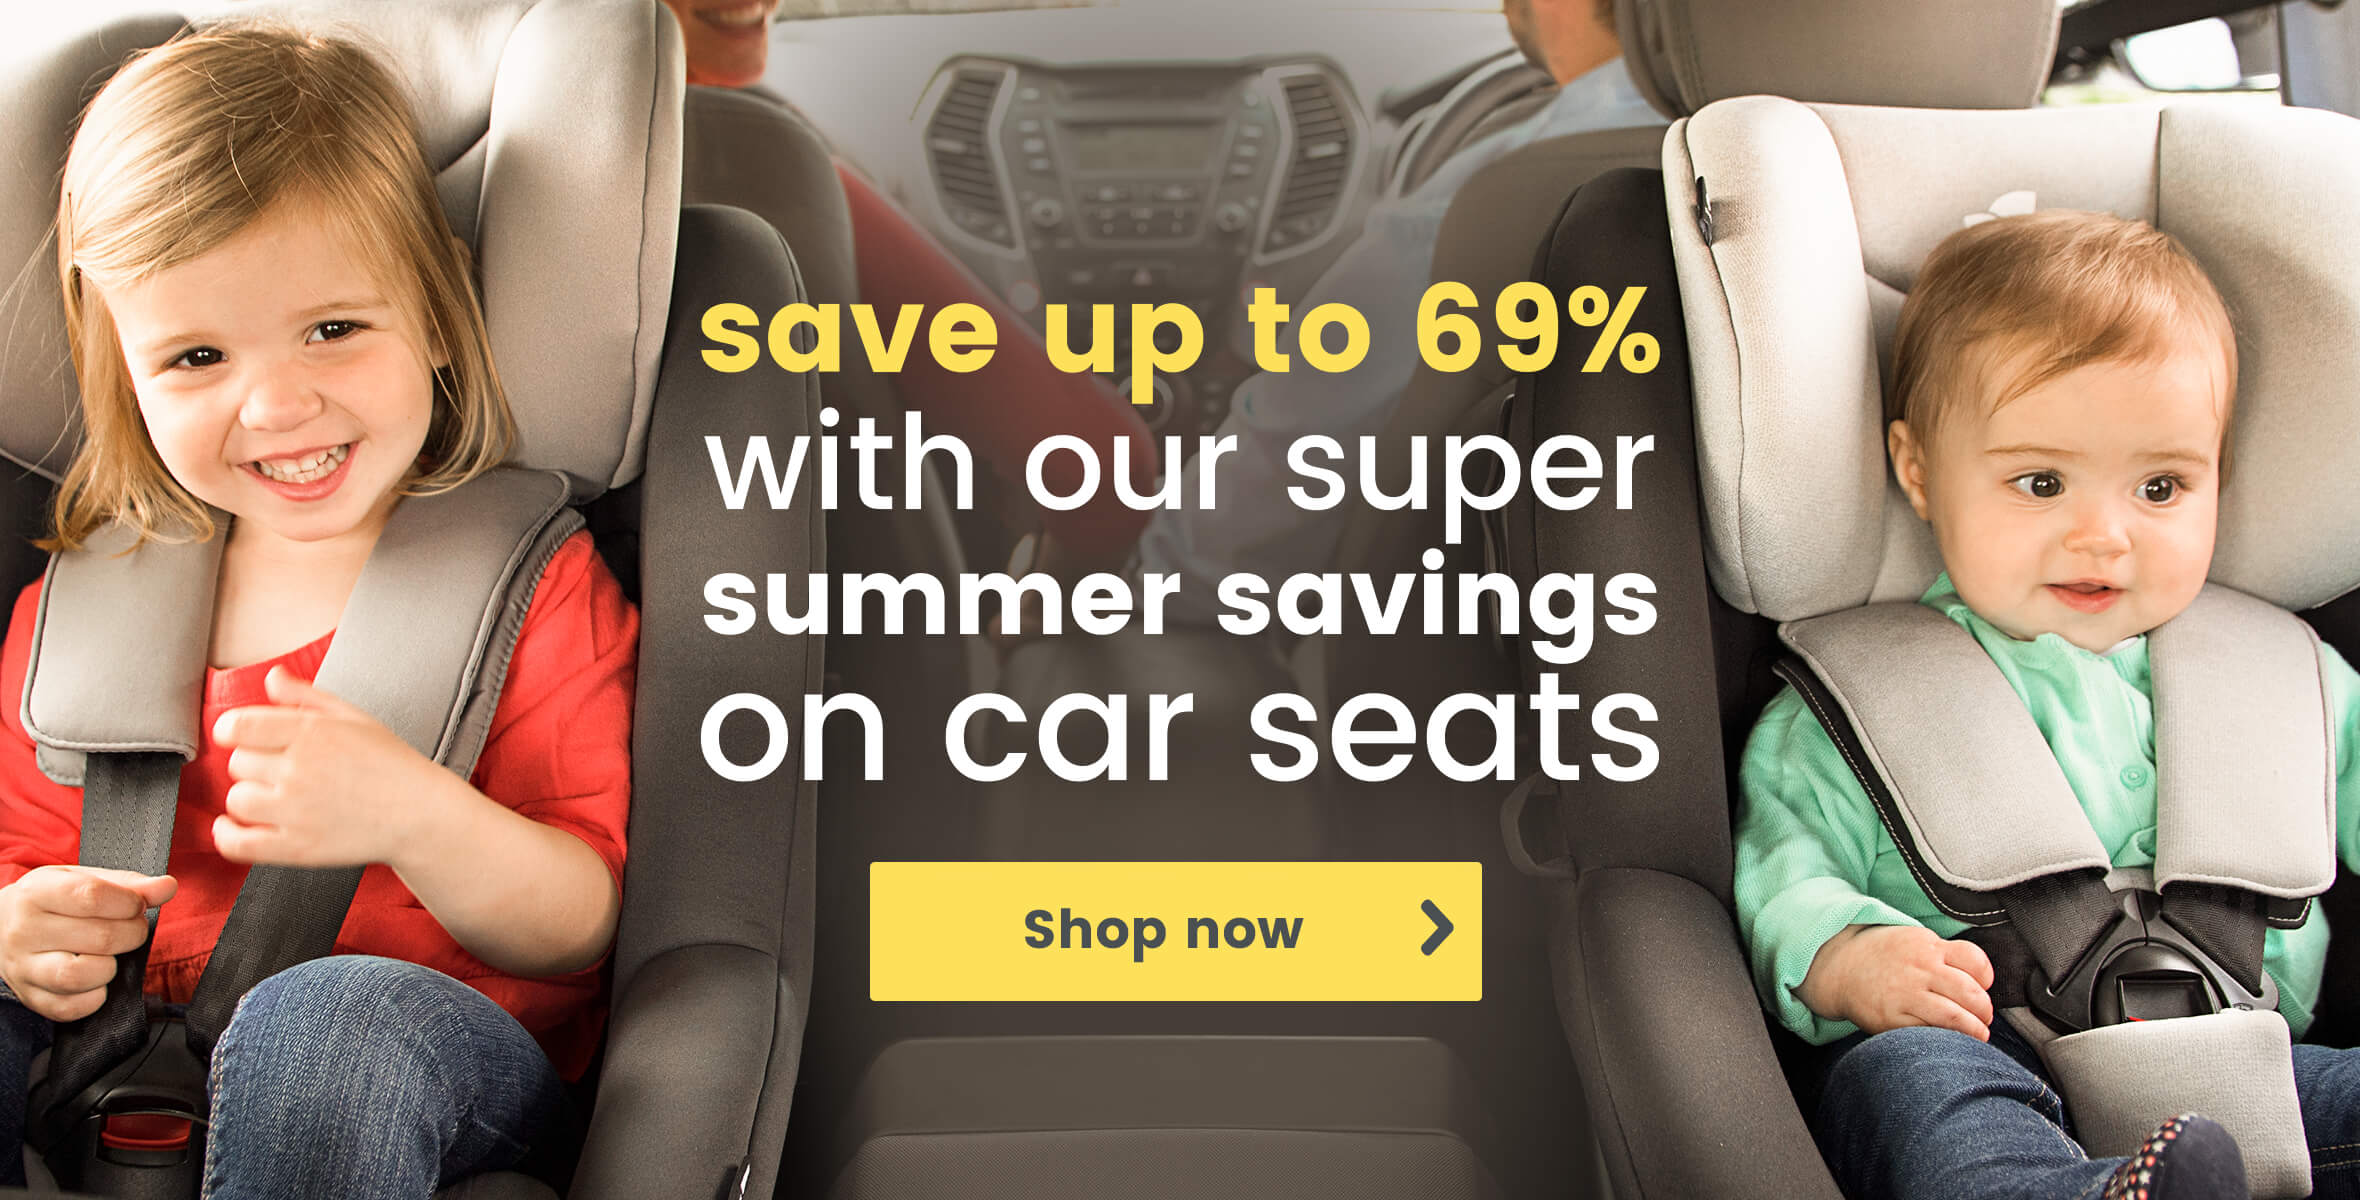 Save over 50% with our super summer savings on car seats